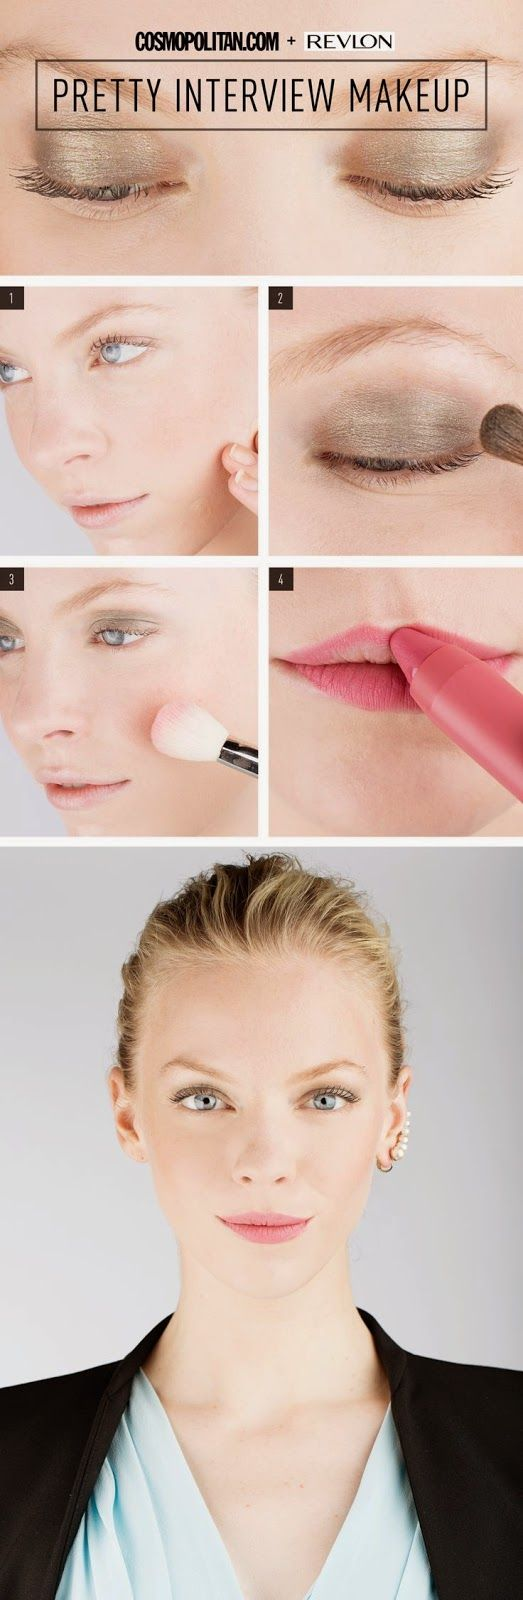 Pretty Interview Makeup | Makeup artist Gigi Shaker shows you exactly how to create the perfect interview look that's pretty yet professional.| FormalHealth